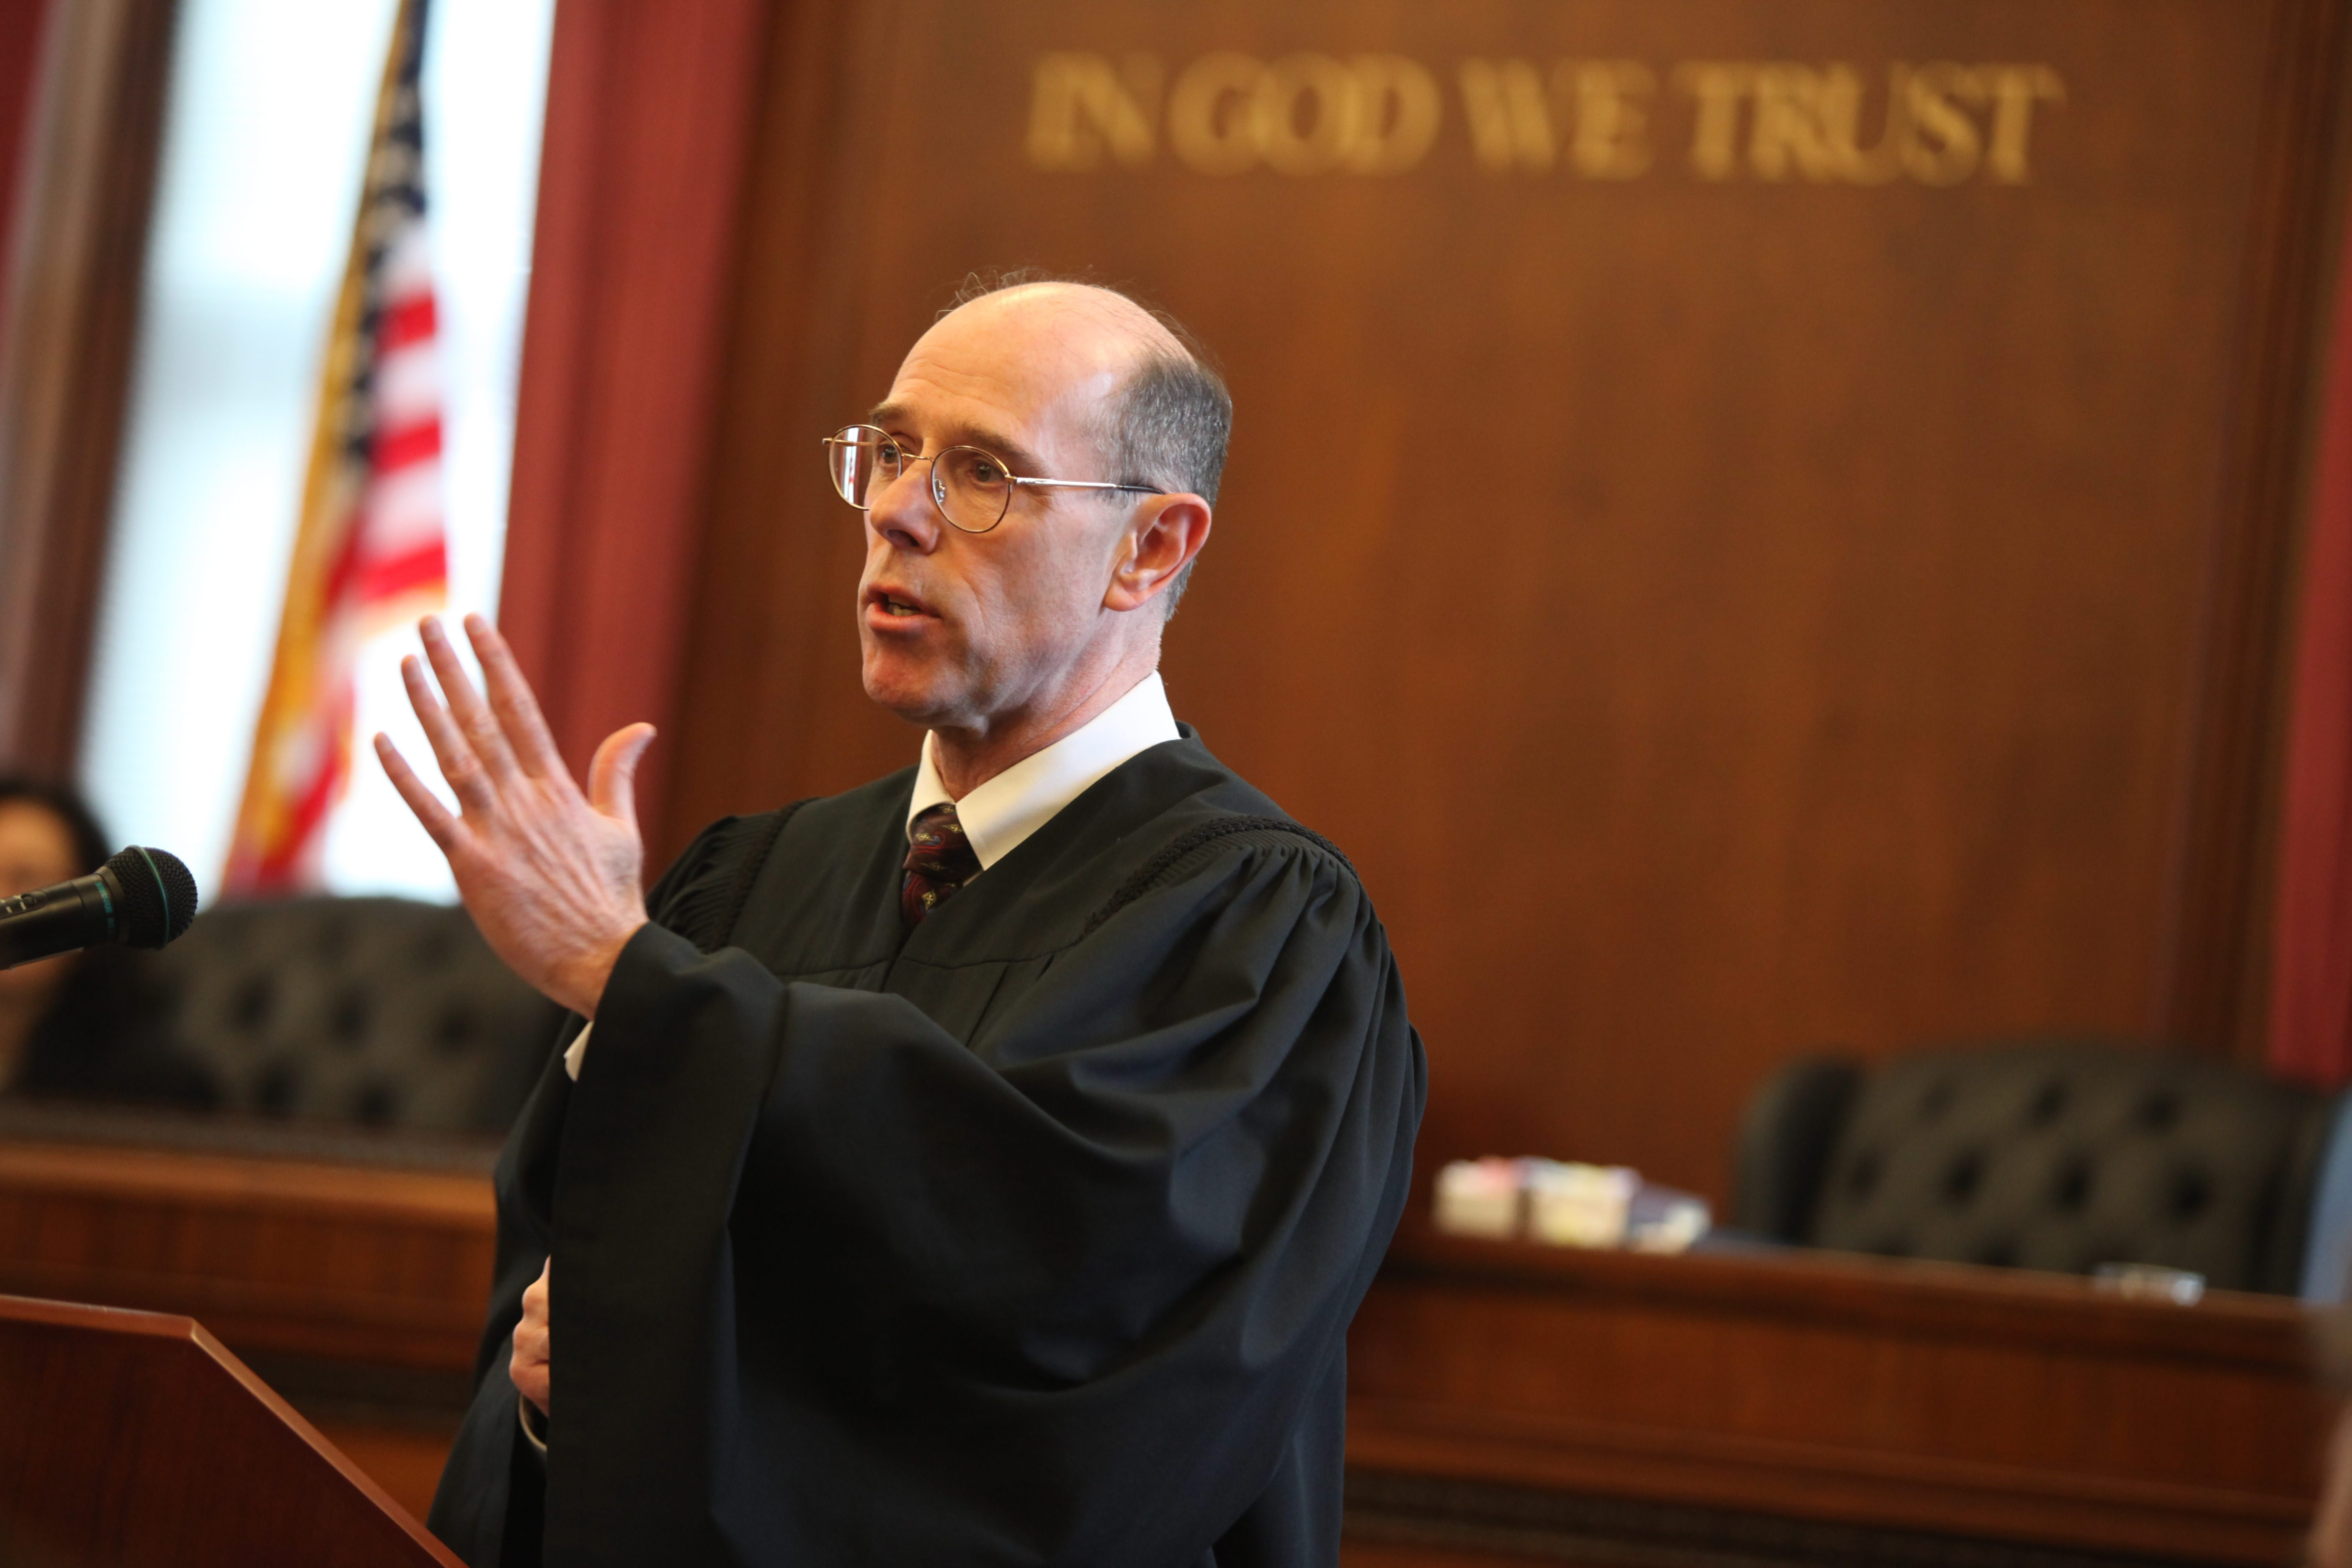 Eugene M. Fahey speaks after being sworn in for another term as a New York State Supreme Court justice in the Erie County Courthouse in Buffalo on Dec. 27, 2010. (Charles Lewis/Buffalo News file photo)